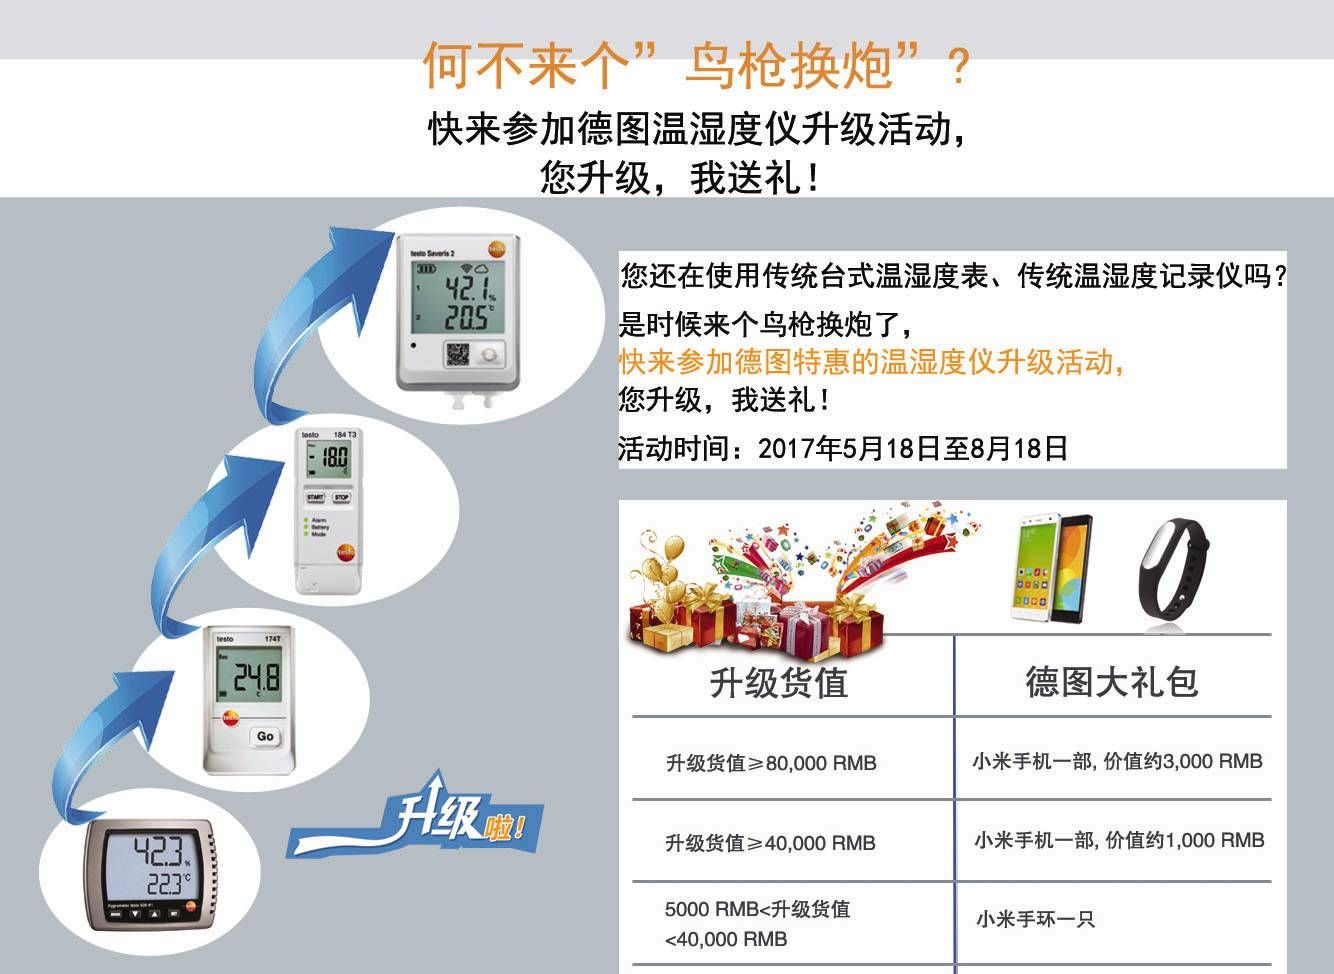 cn-20170518-Food-cold-chain-campaign_1334x97401.jpg